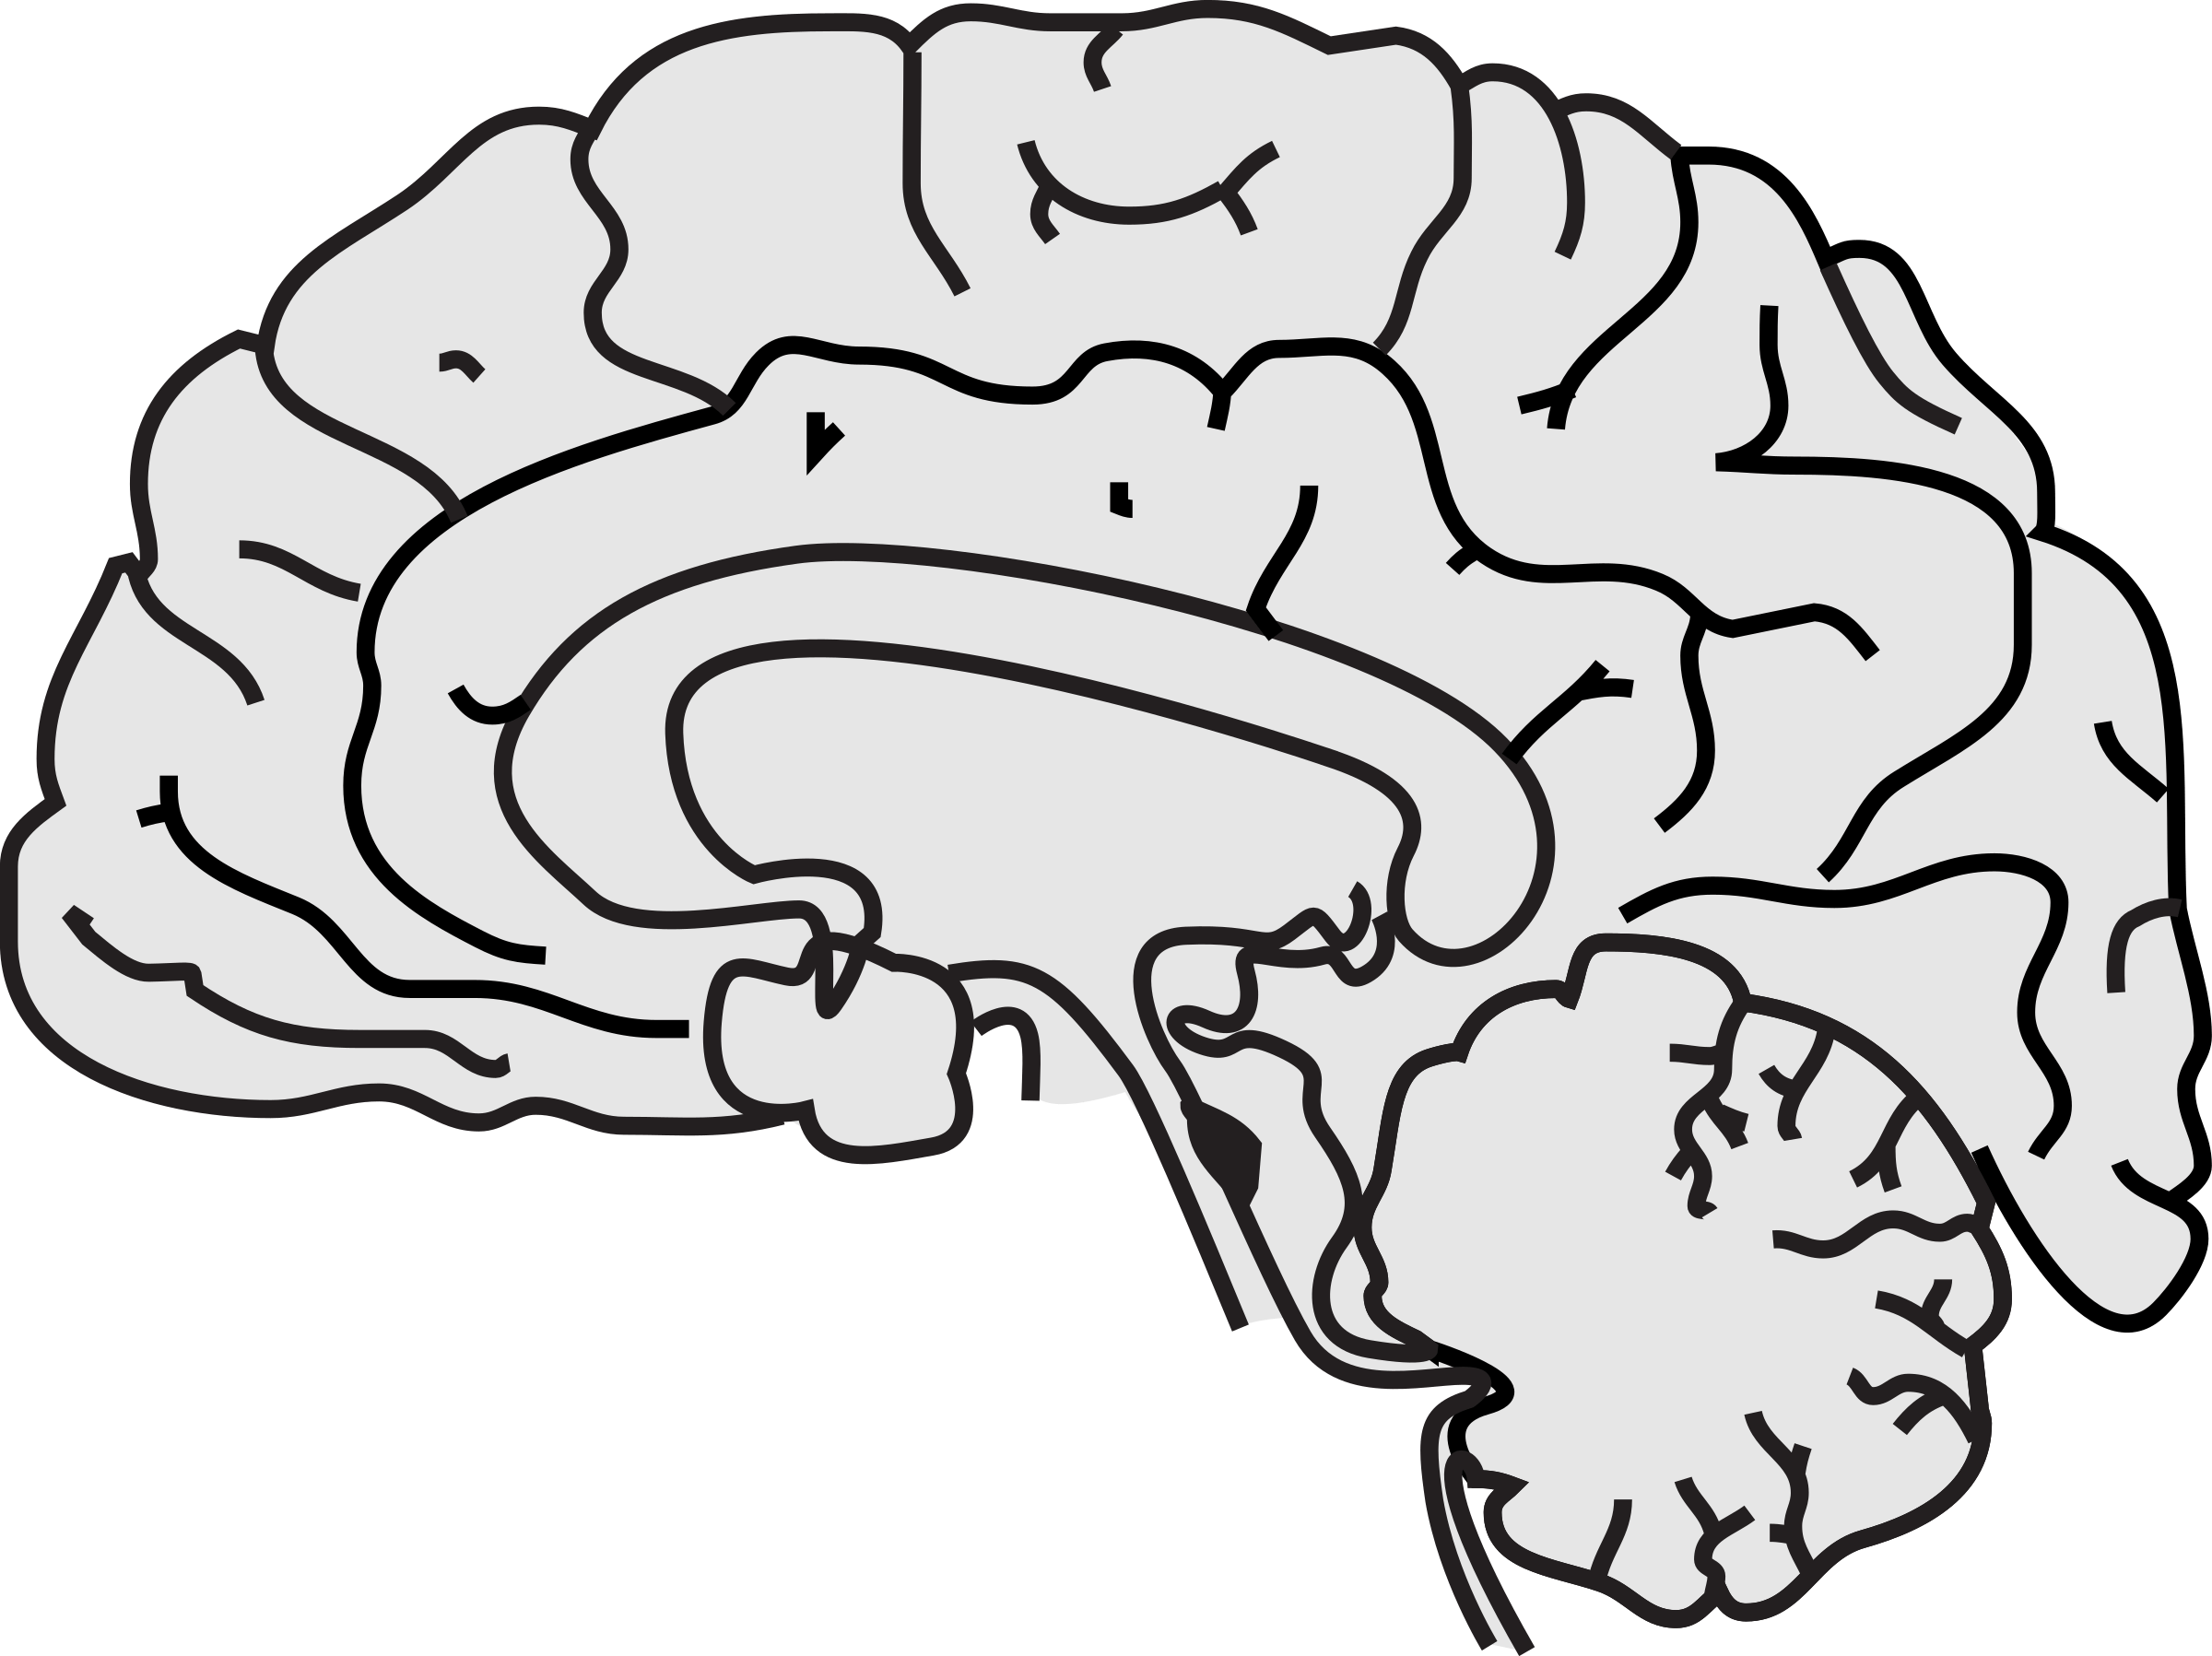 easy brain diagram 3 phase wiring clipart simple